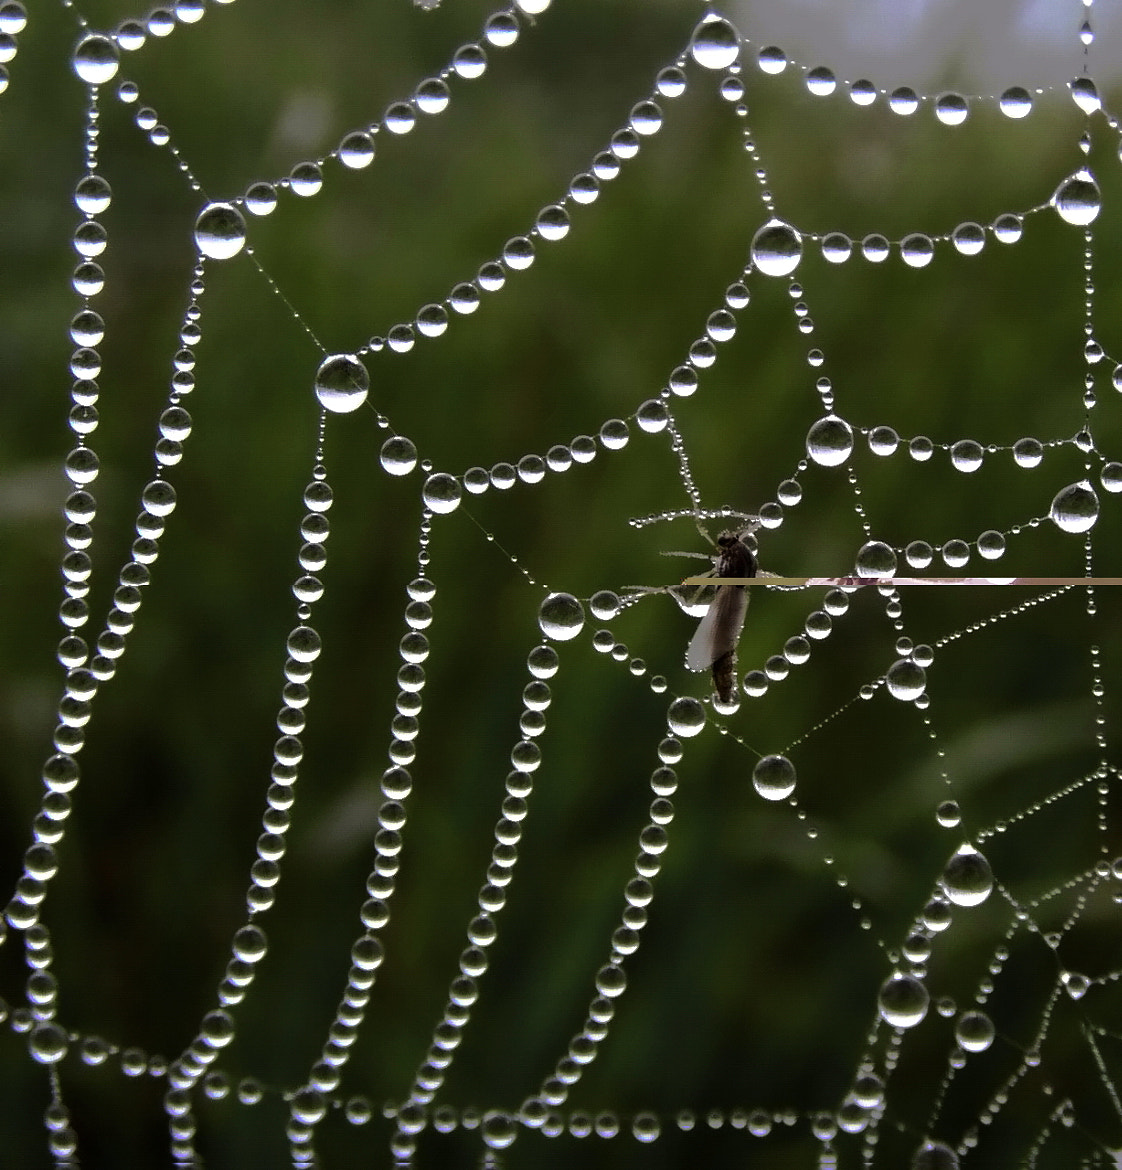 Photograph Web by Helen Filatova on 500px